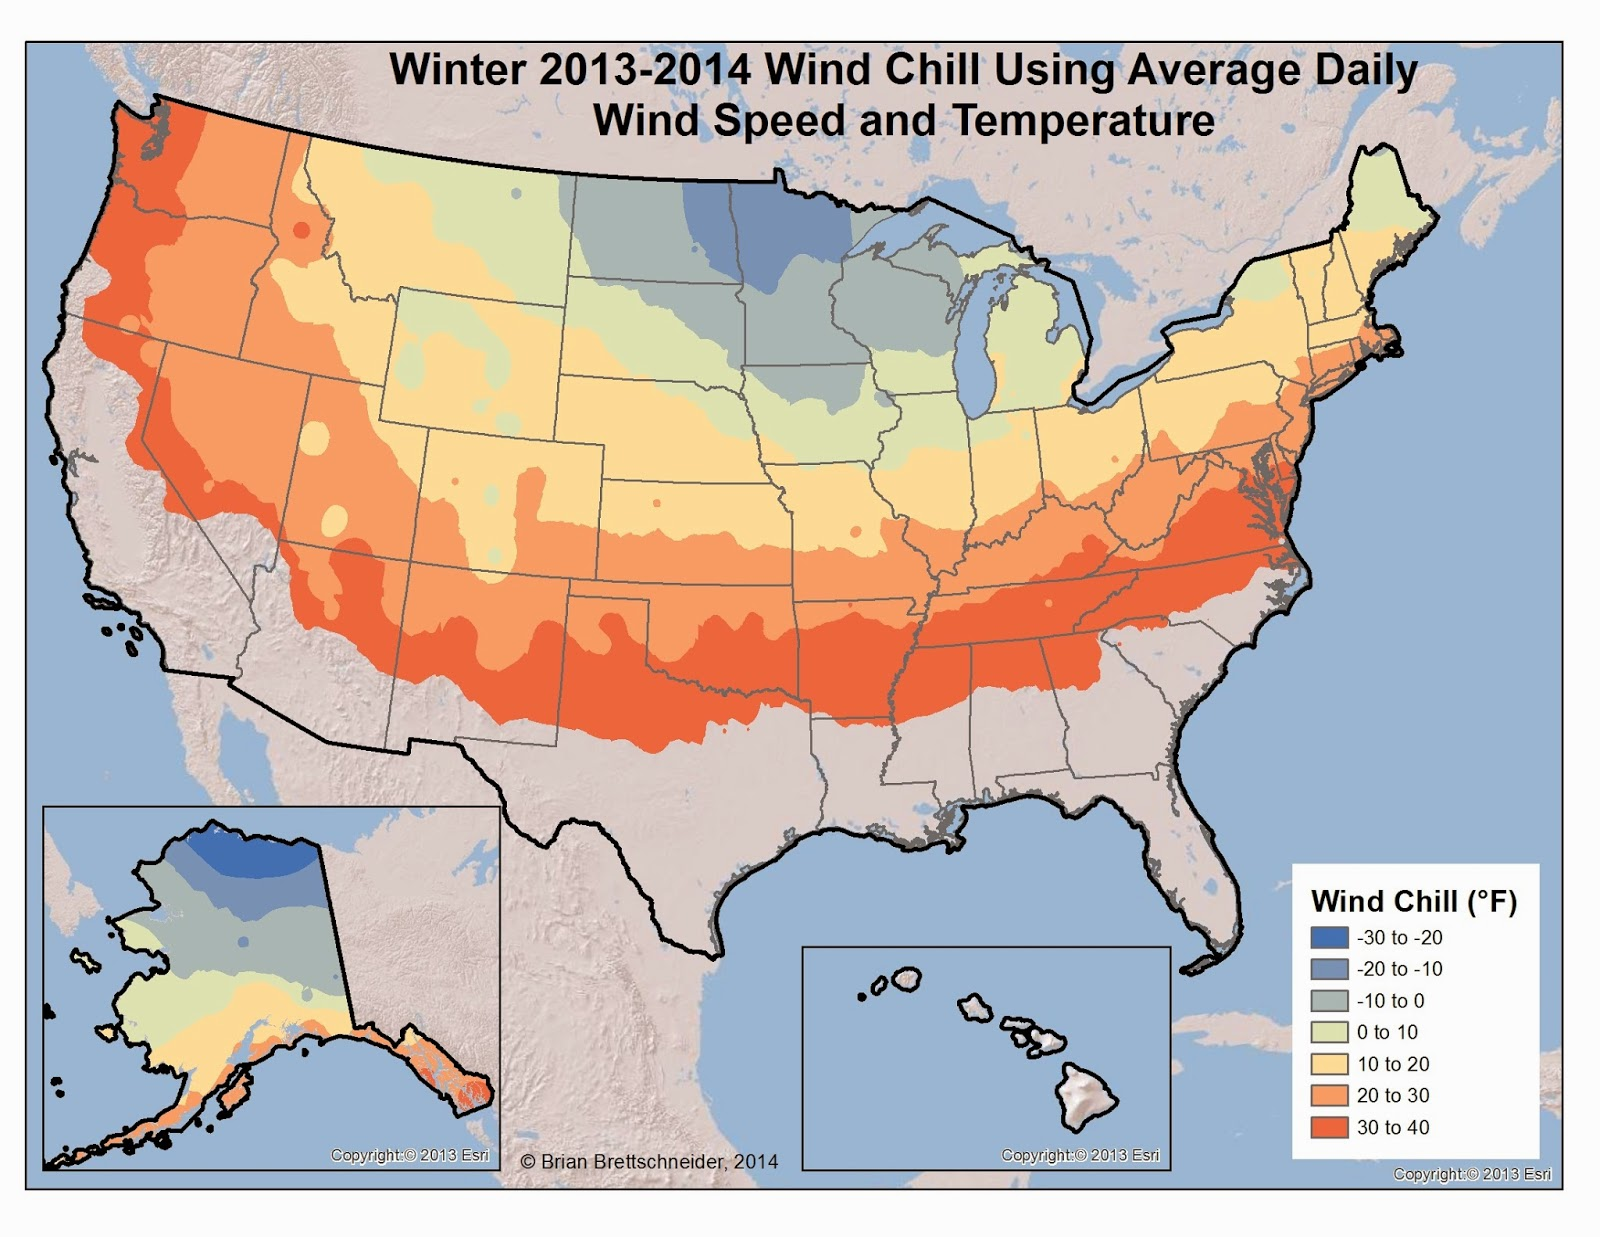 US_2013-2014_Winter_Wind_Chill Winter Temperatures In Us Map on old climate map, winter in the united states, january temperature map, world zone climate regions map, weather map, winter temperatures across united states, average temperature by state map, winter precipitation map us, average winter temperature map, winter climate map, winter temperatures of water in us, winter weather forecast 2014-15, winter temperature map united states,